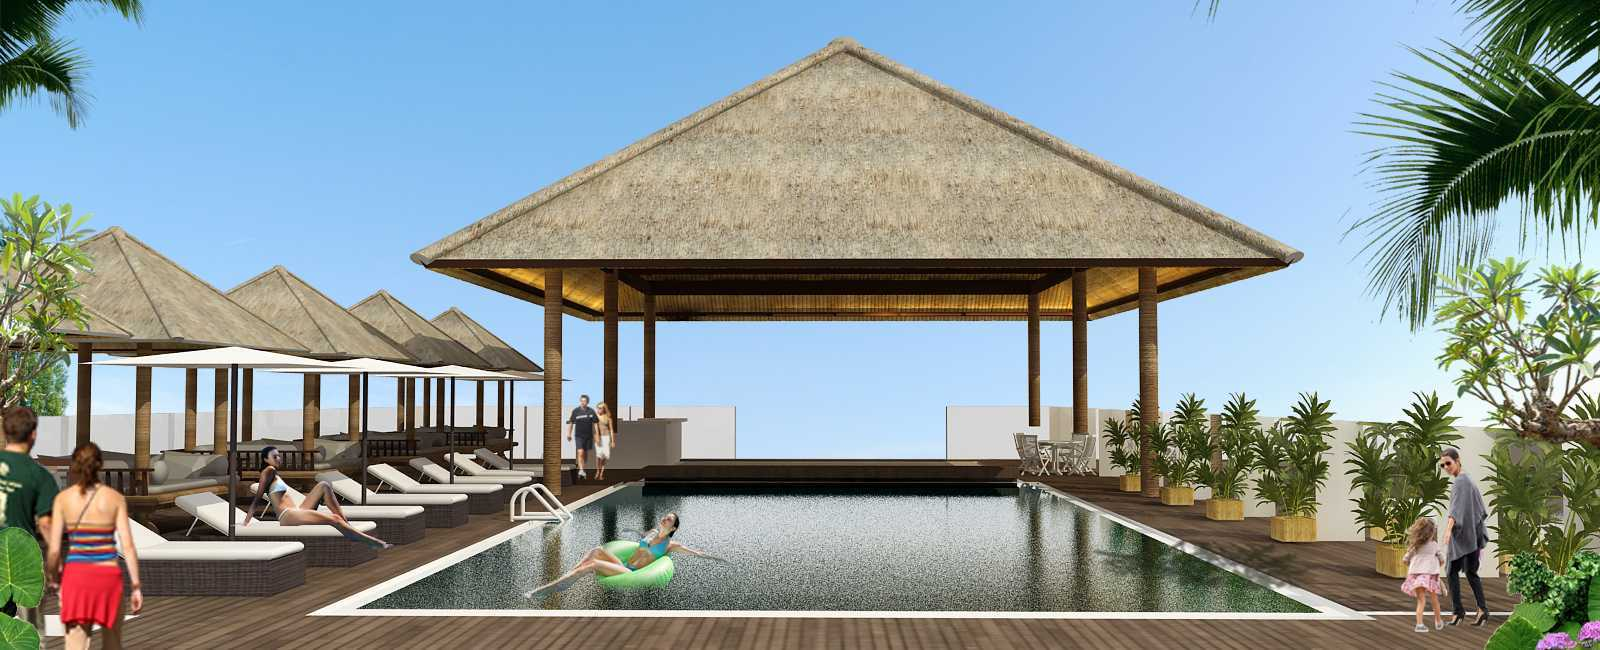 Studio Asri Canggu Beach Hotel Bali, Indonesia Bali, Indonesia Rooftop Swimming Pool   17022